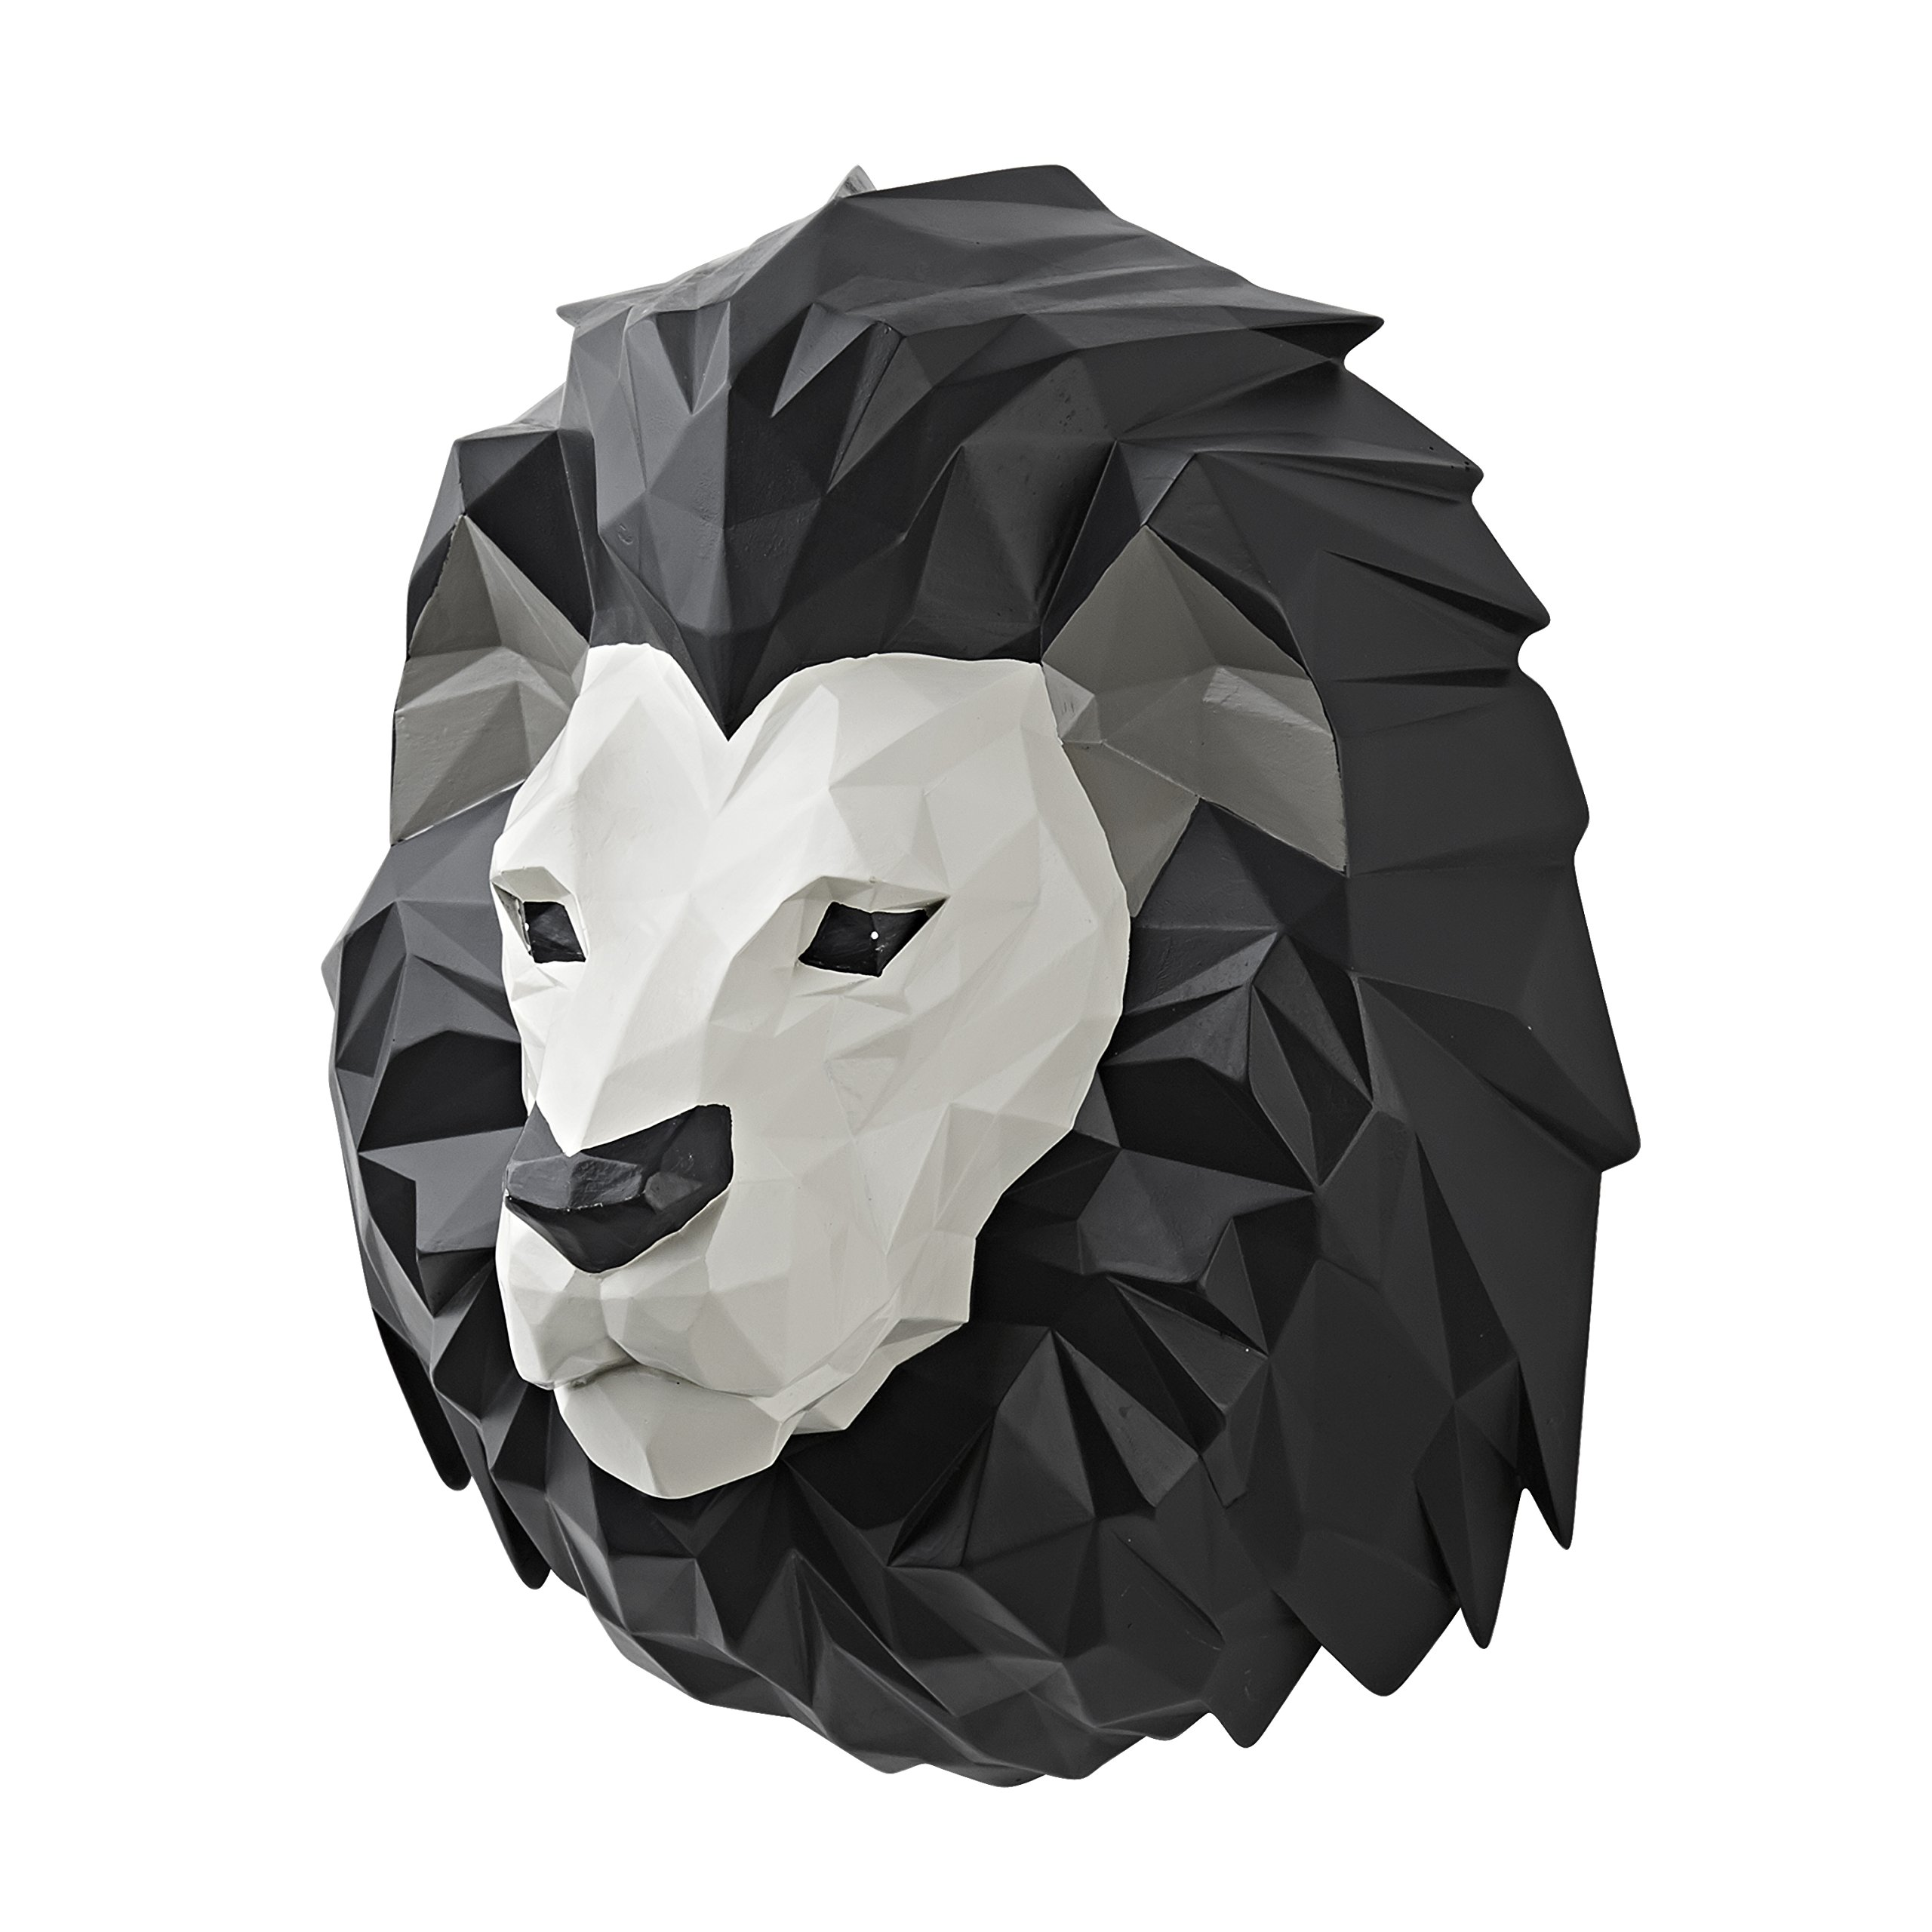 Vistella 3D Lion Head Wall Art Decor - Modern Origami Wall Mountable Resin Animal Head - Multi Tone Digital Pixel Design - Home Indoor Abstract Decorative Sculpture